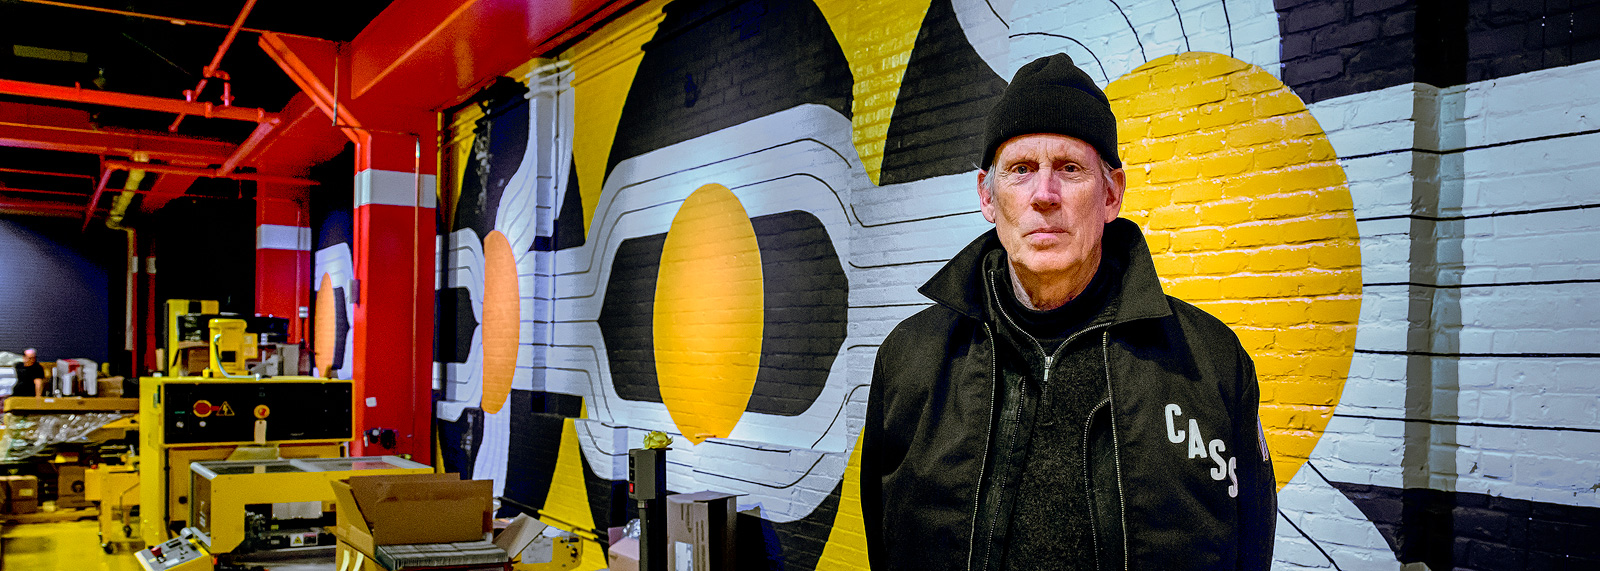 Robert Sestok in front of his mural at Third Man Pressing in the Cass Corridor <span class='image-credits'>Doug Coombe</span>